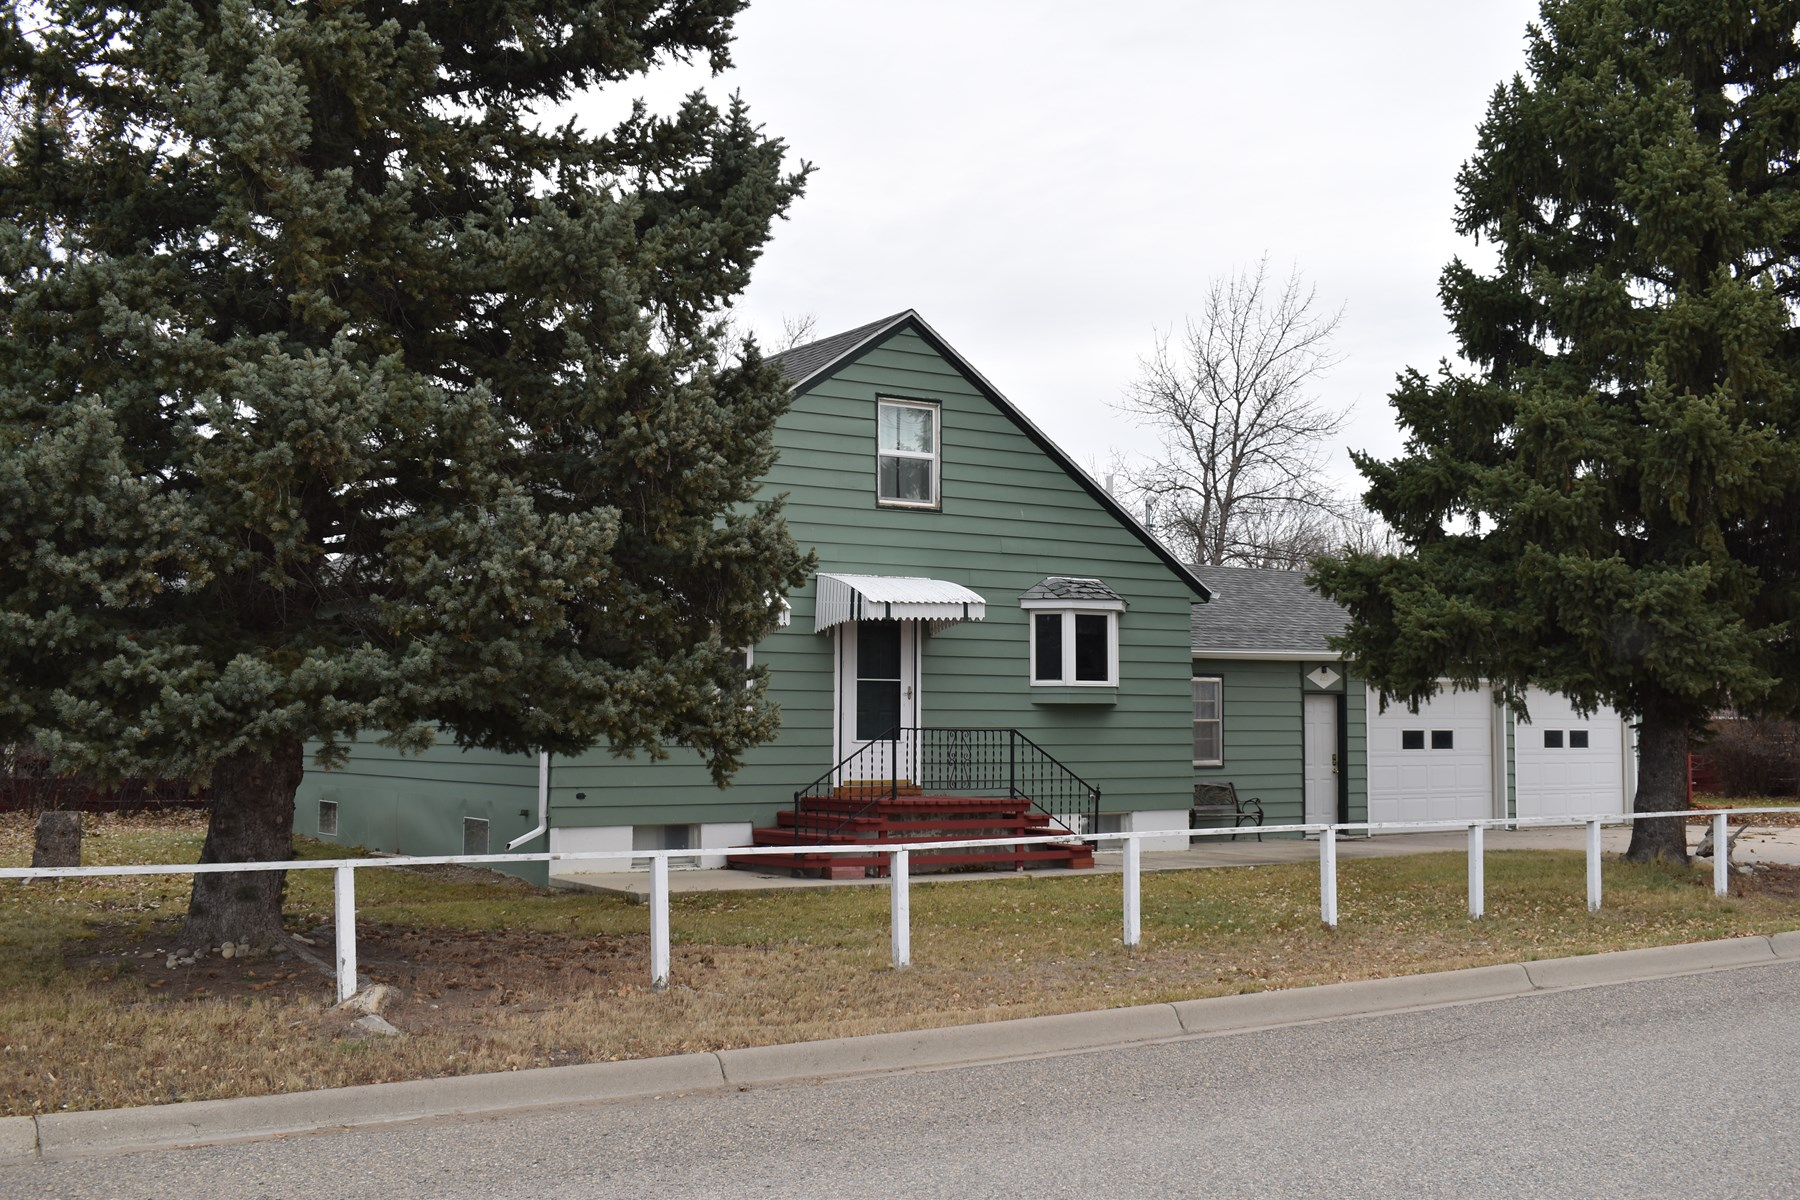 Home for sale in Conrad, Montana